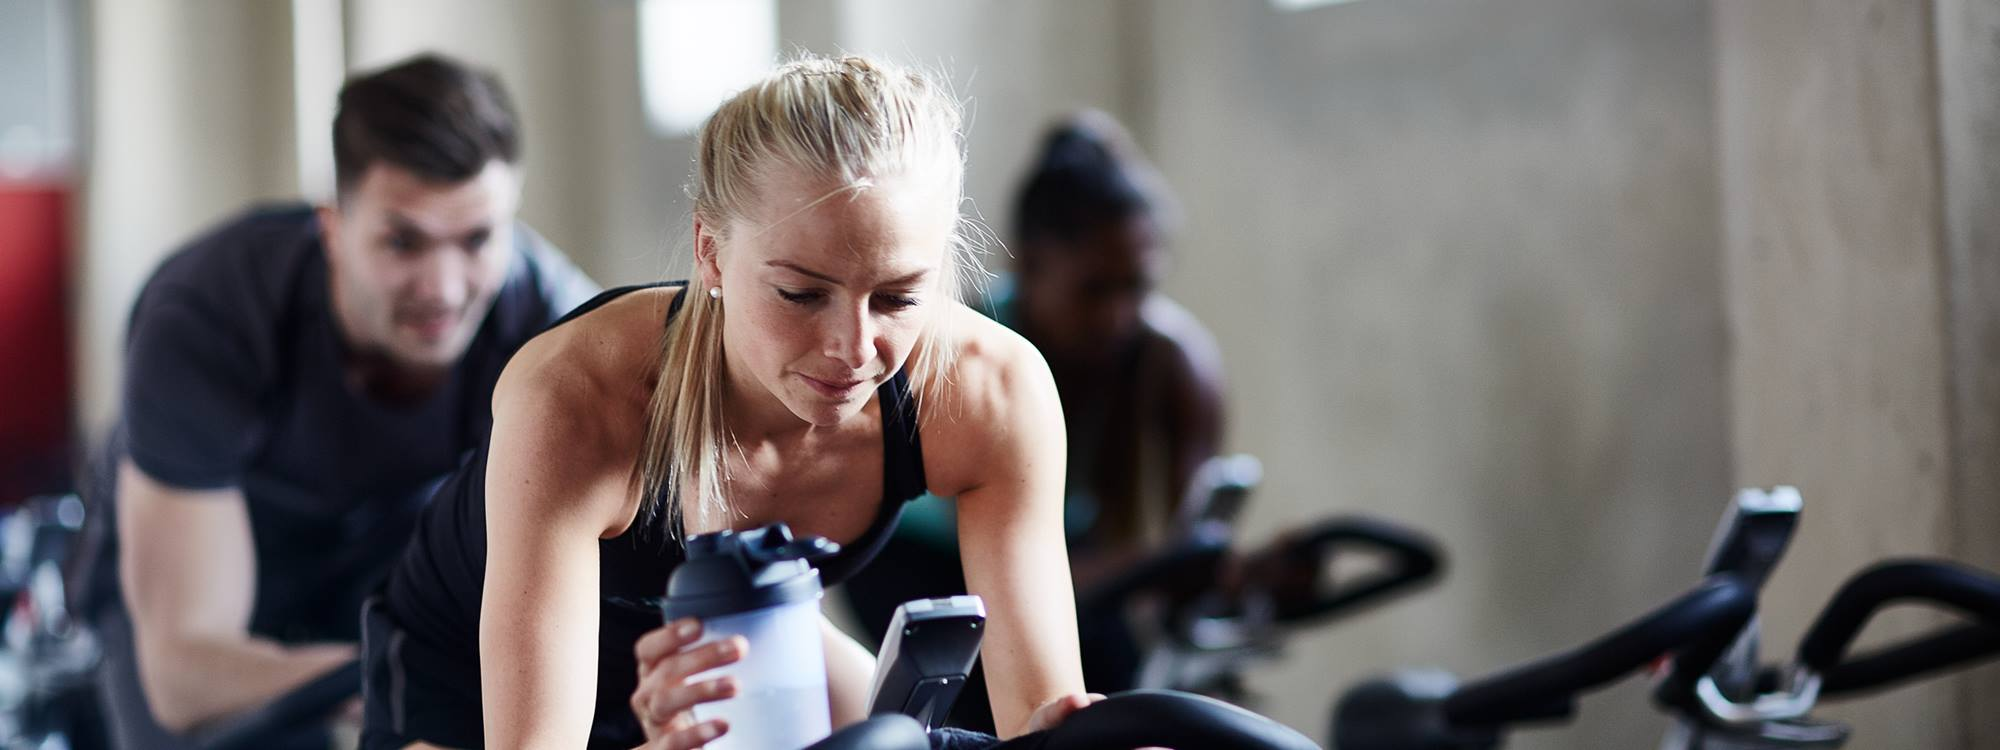 Maximize the benefit of training with whey protein